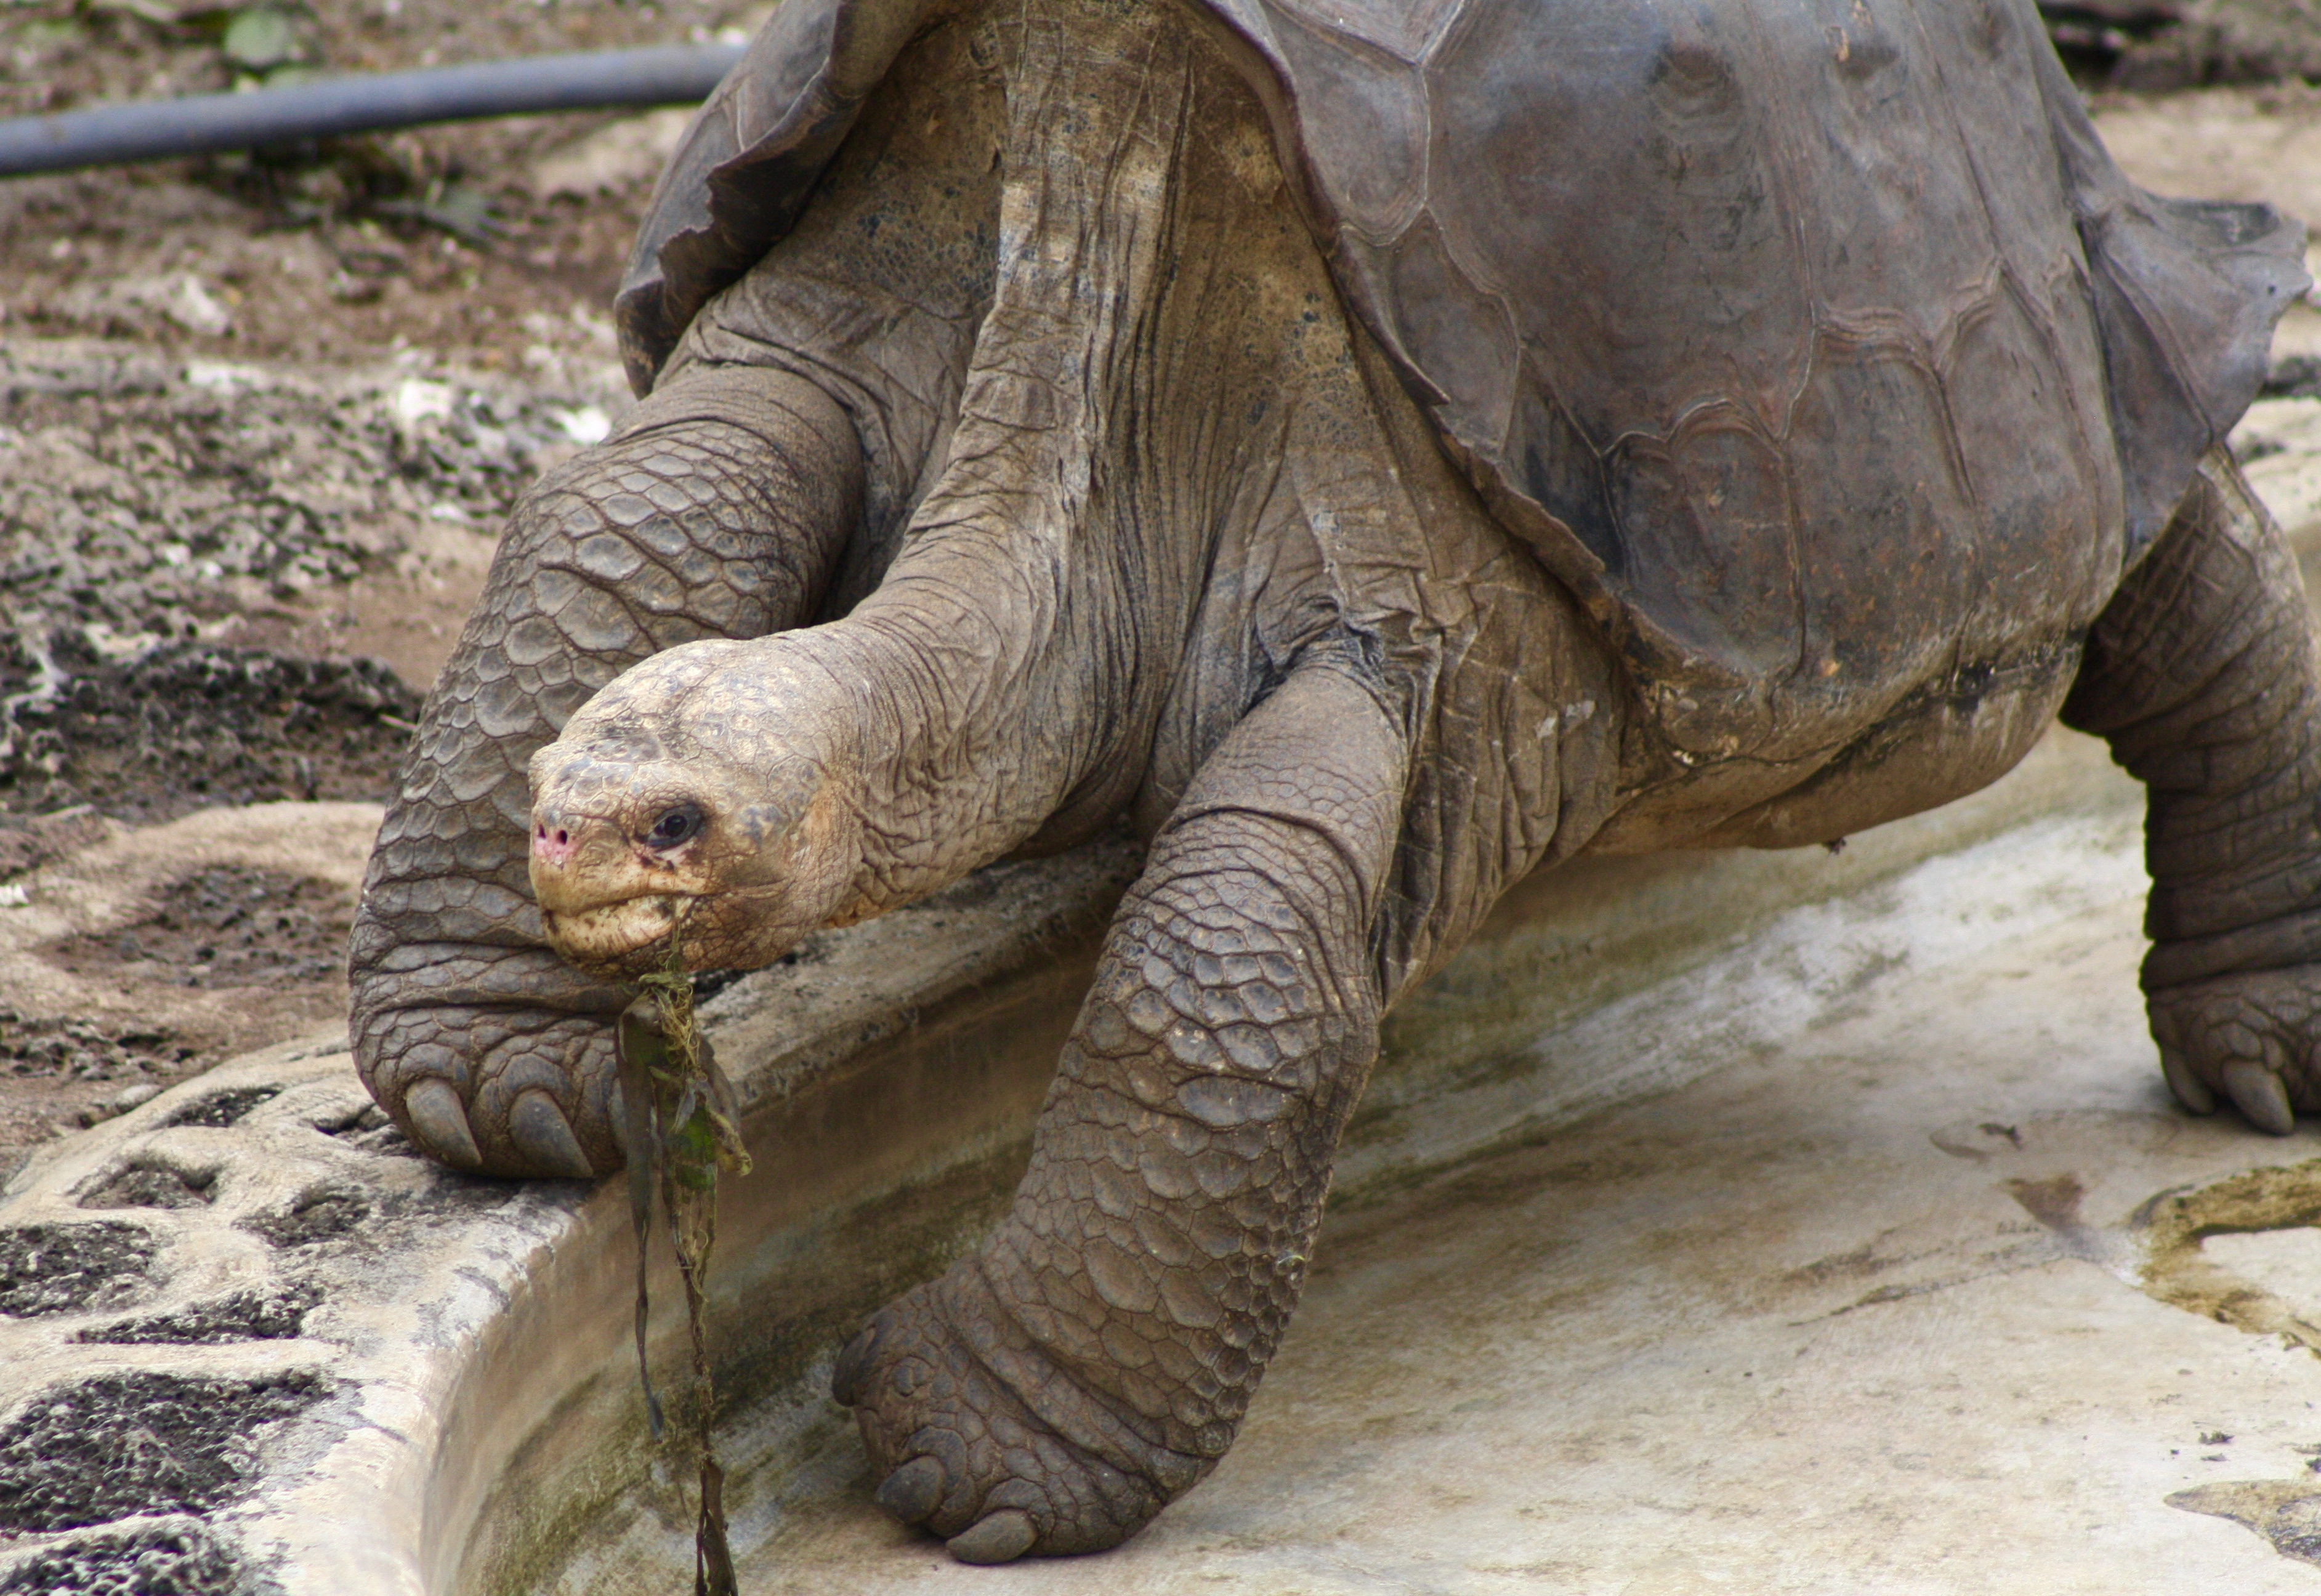 Pictures of pinta island tortoise Cached